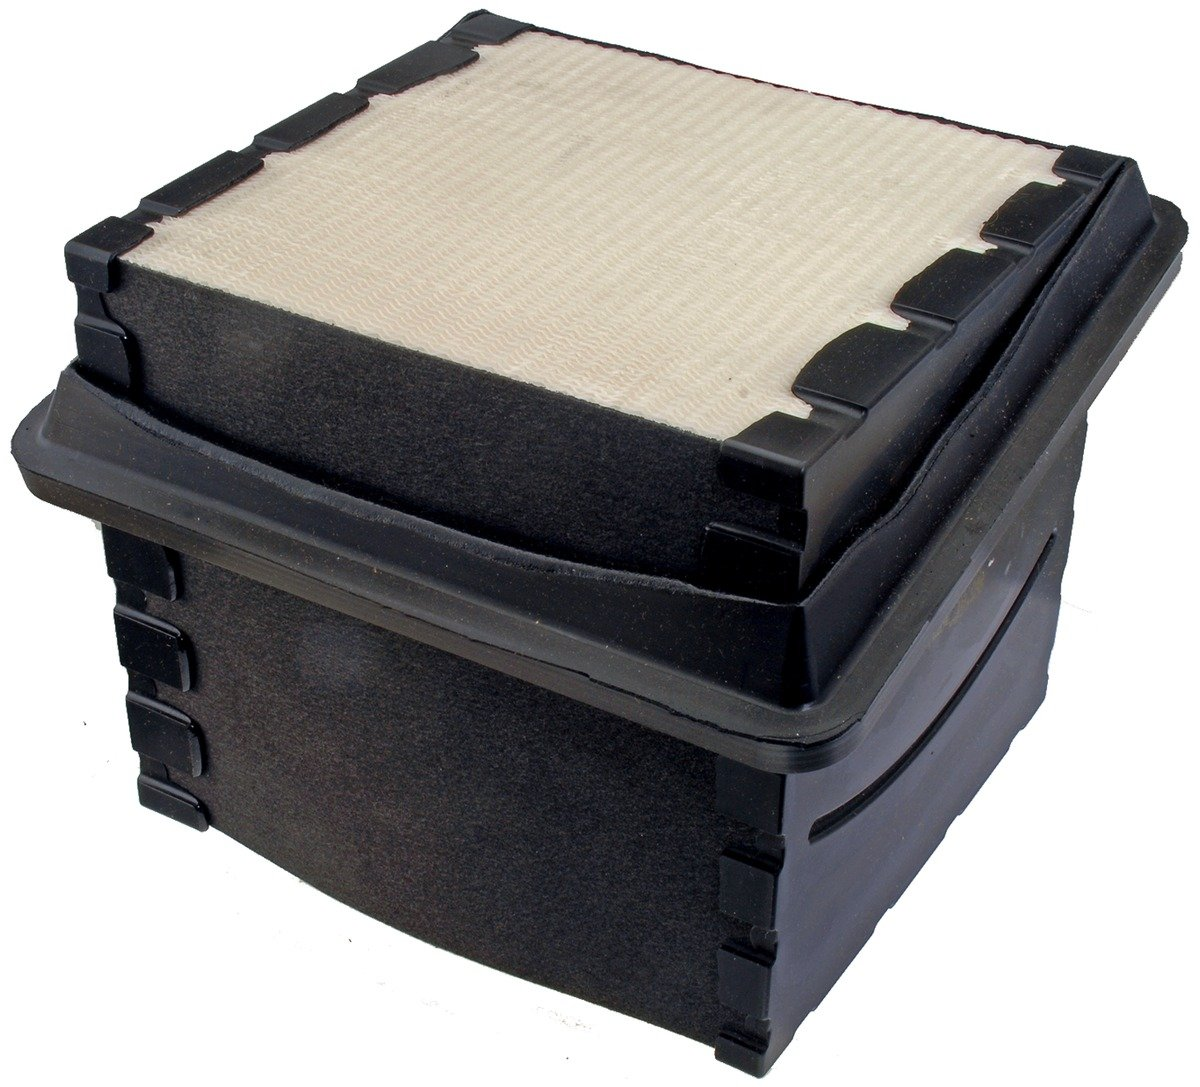 Luber-finer LAF9104 Heavy Duty Air Filter by Luber-finer